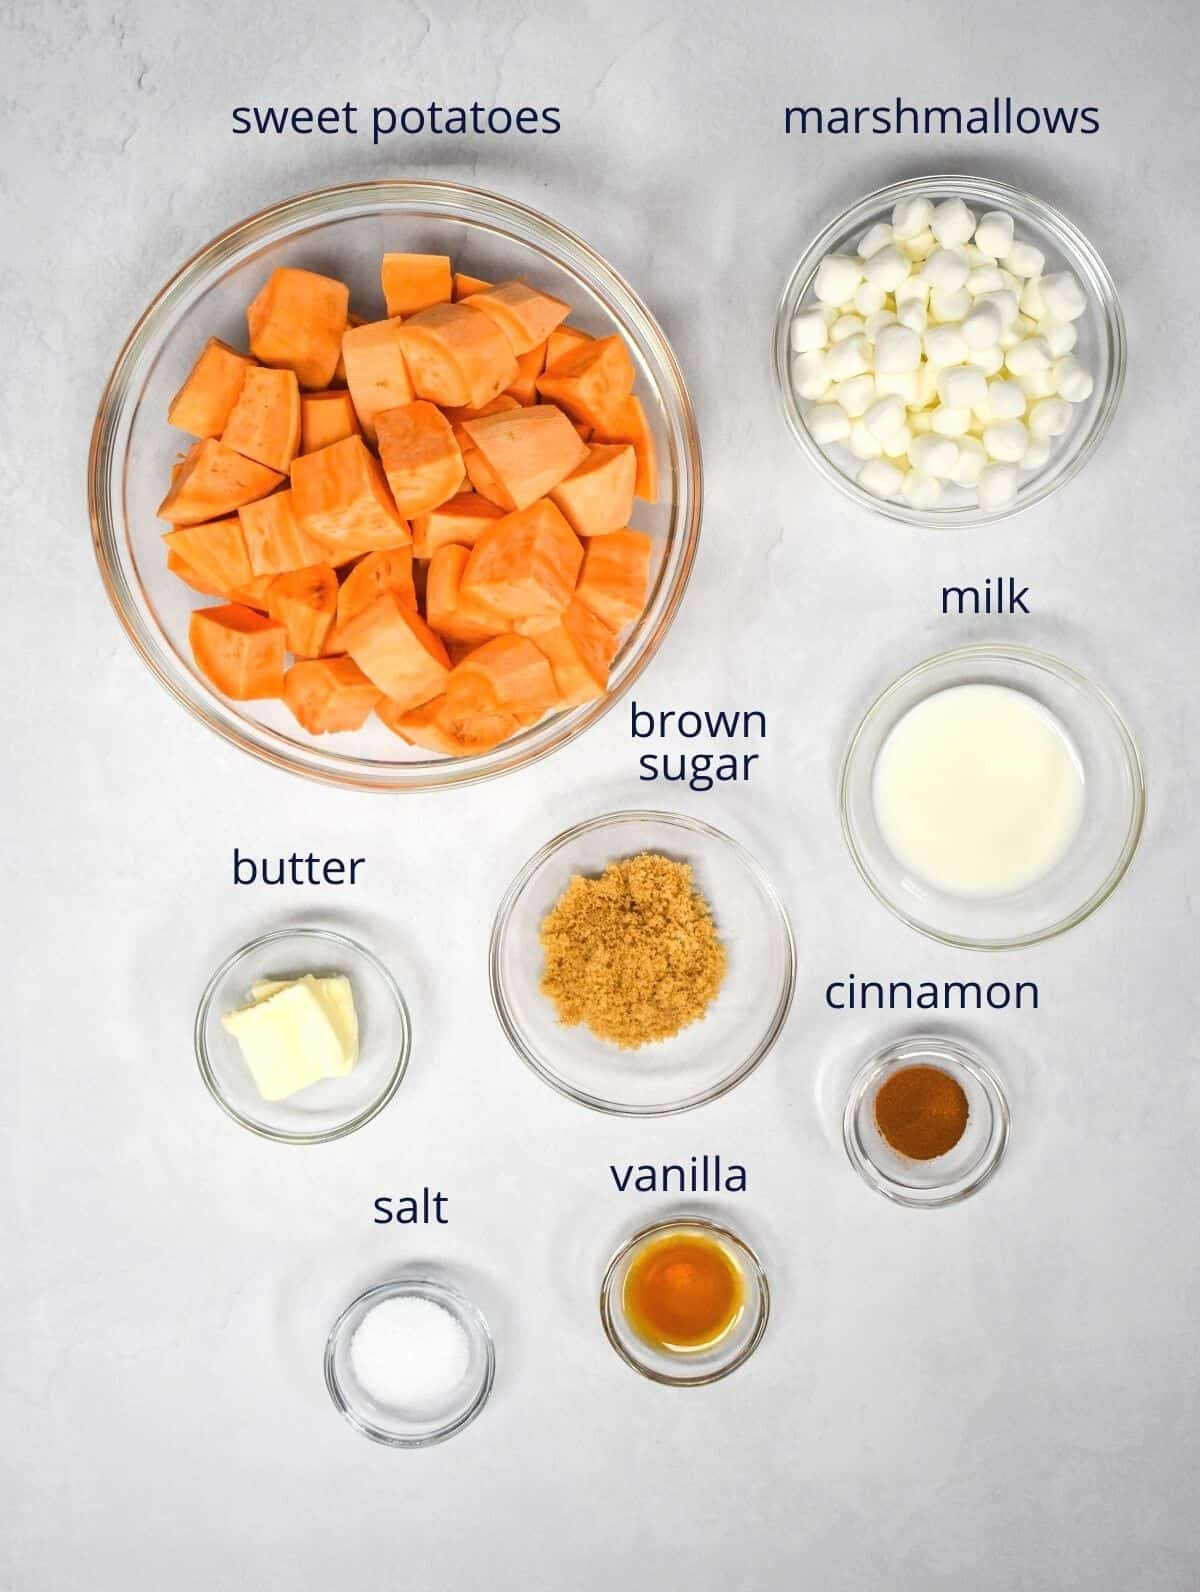 The ingredients for the dish prepped and arranged in glass bowls and set on a white table. Each ingredient has a small label with its name.